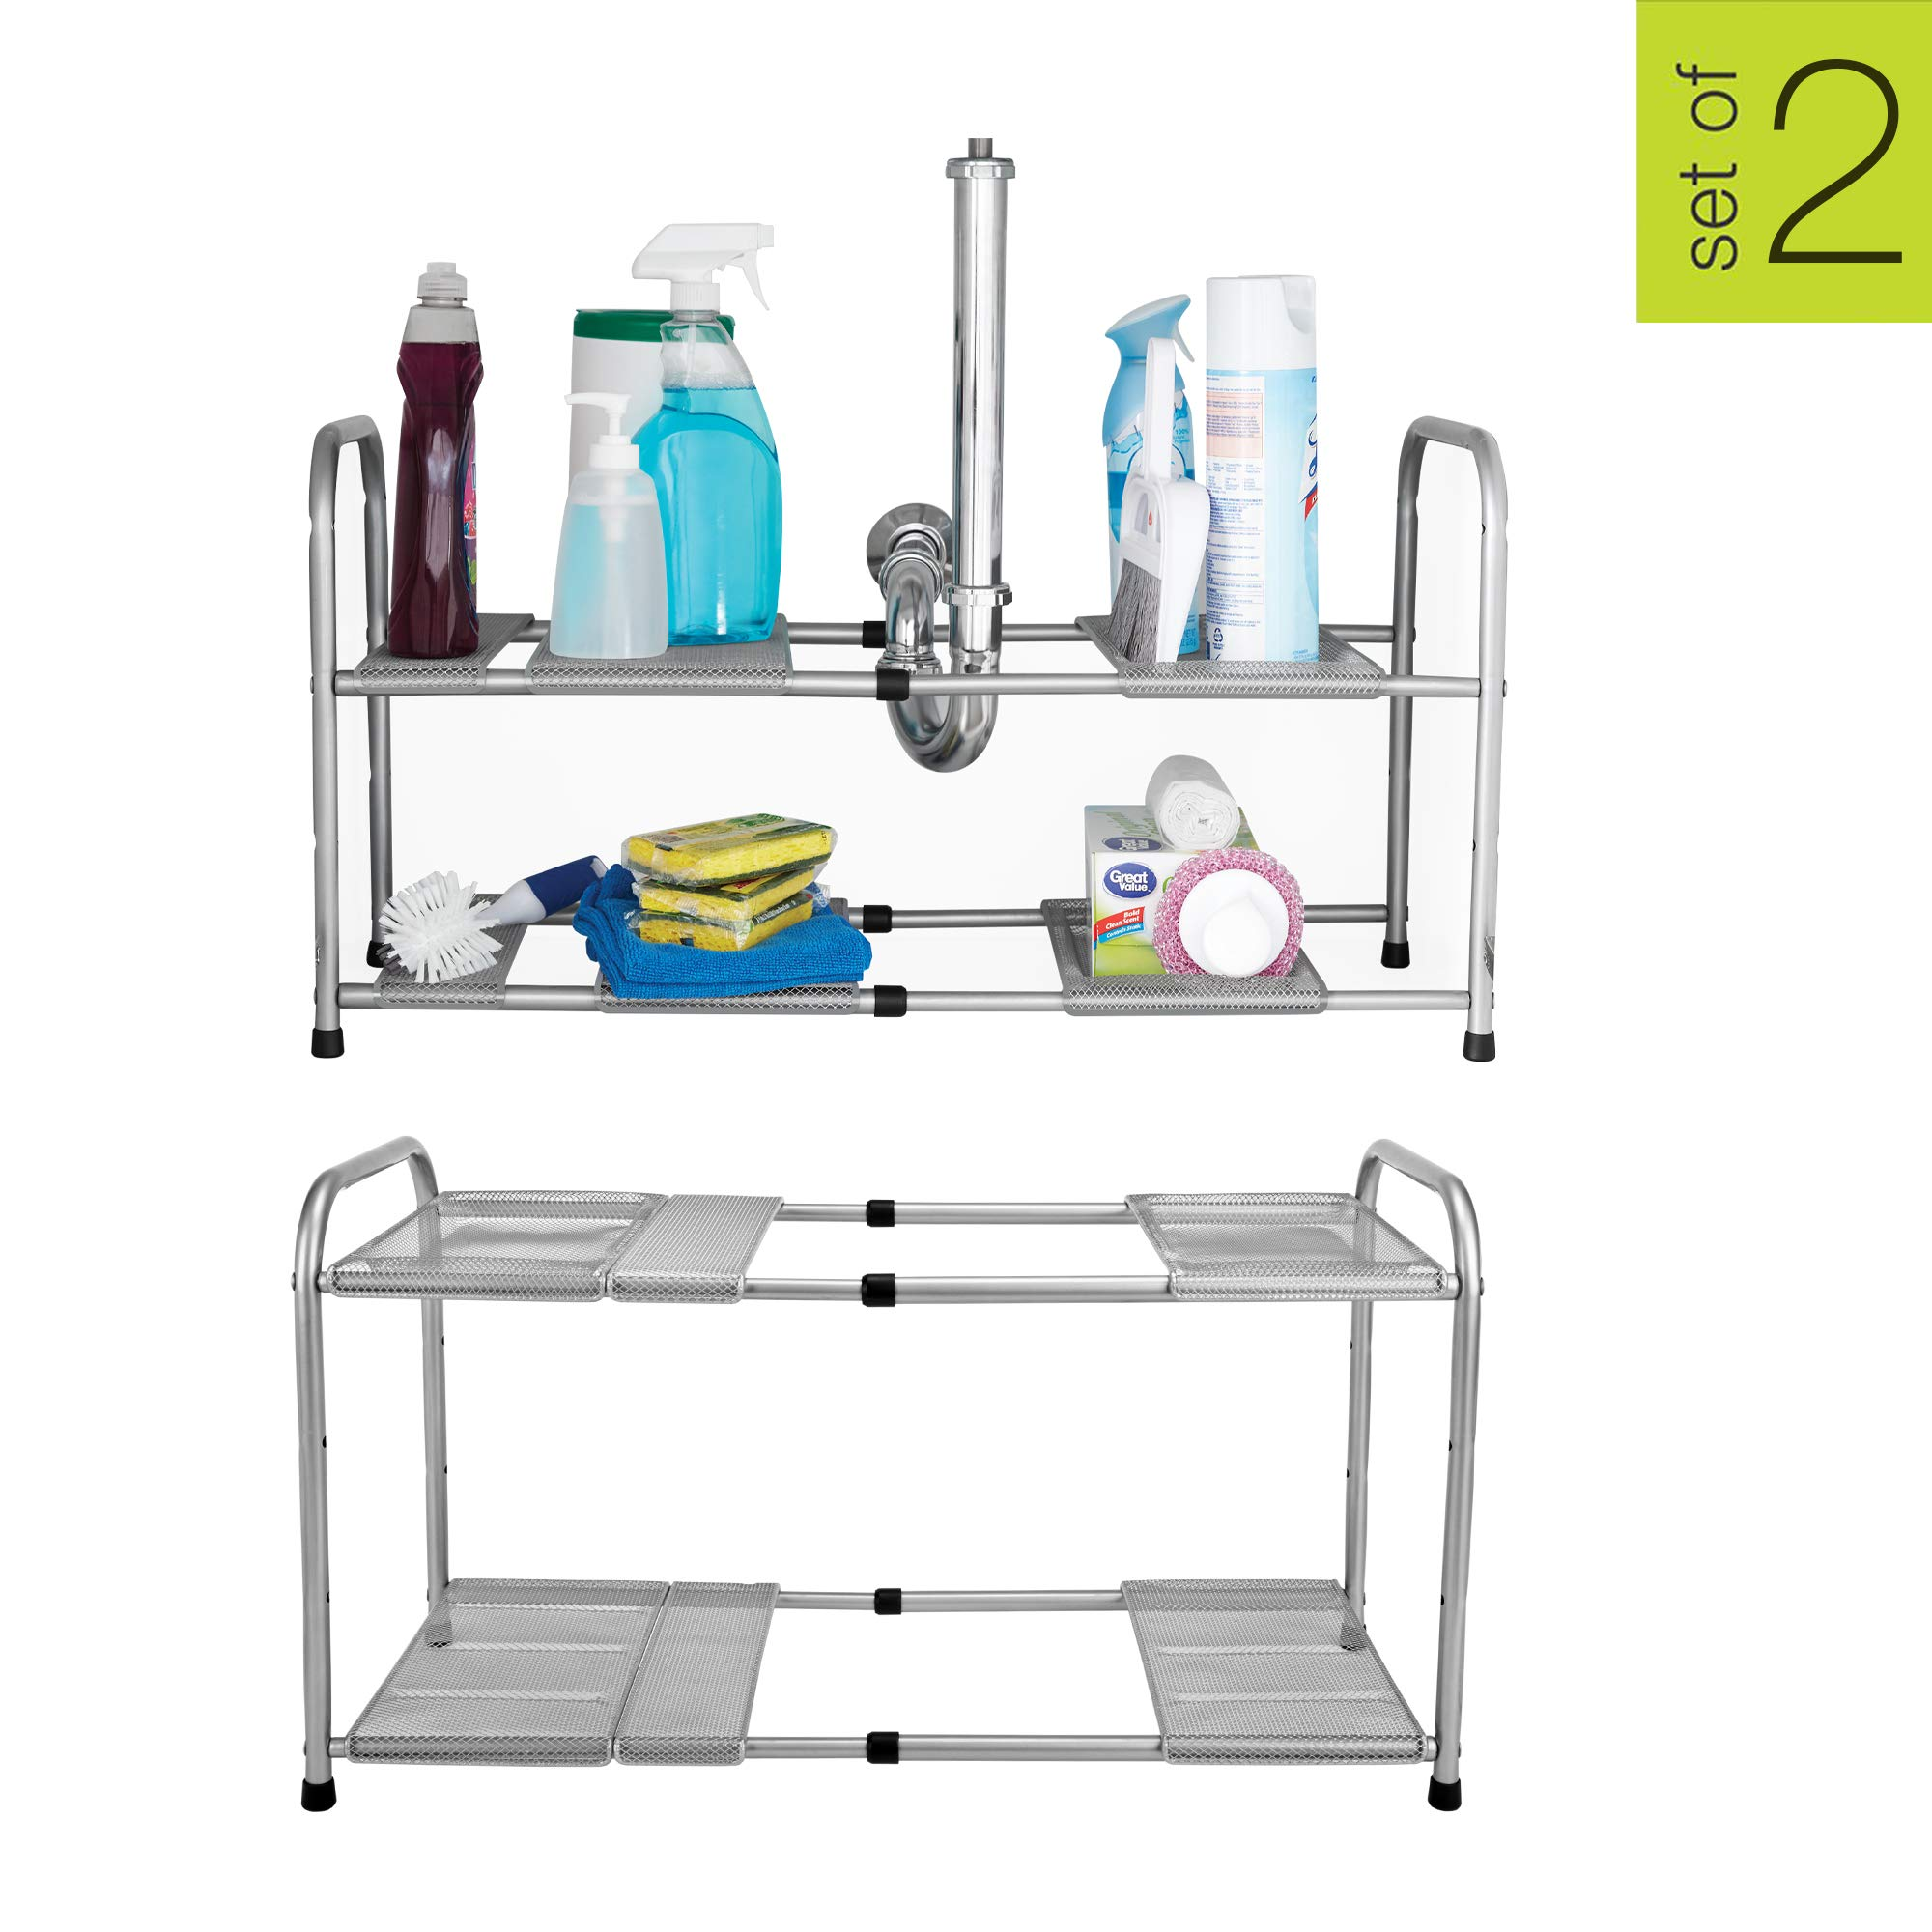 Smart Design 2-Tier Under Sink Expandable Organizer w/ 2 Adjustable Shelves - Expands 15 to 25 Inch - Solid Steel Metal Frame - Sinks, Pantry, Shelf Organization - Kitchen [Silver] - Set of 2 by Smart Design